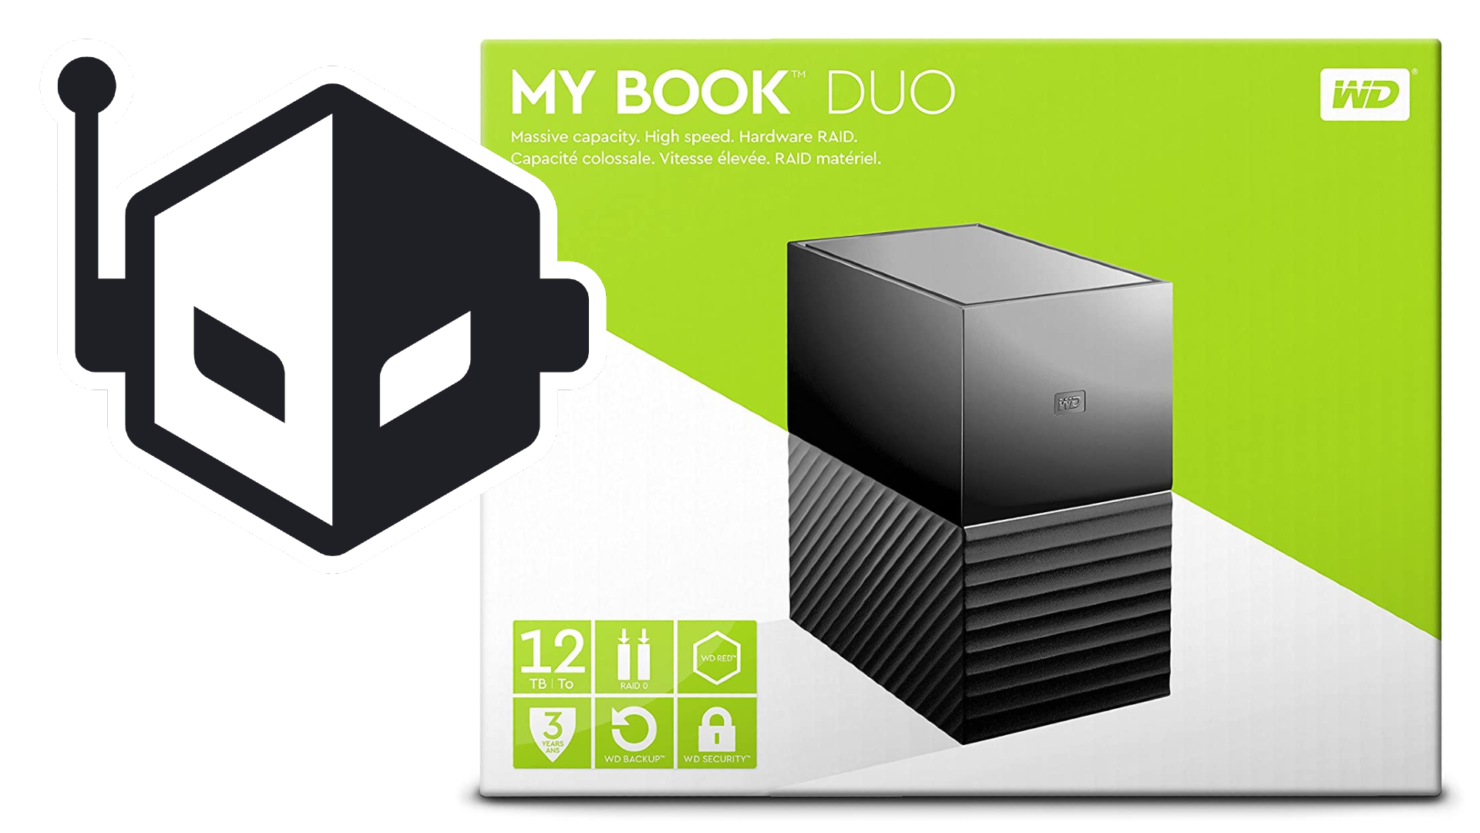 My Book Duo